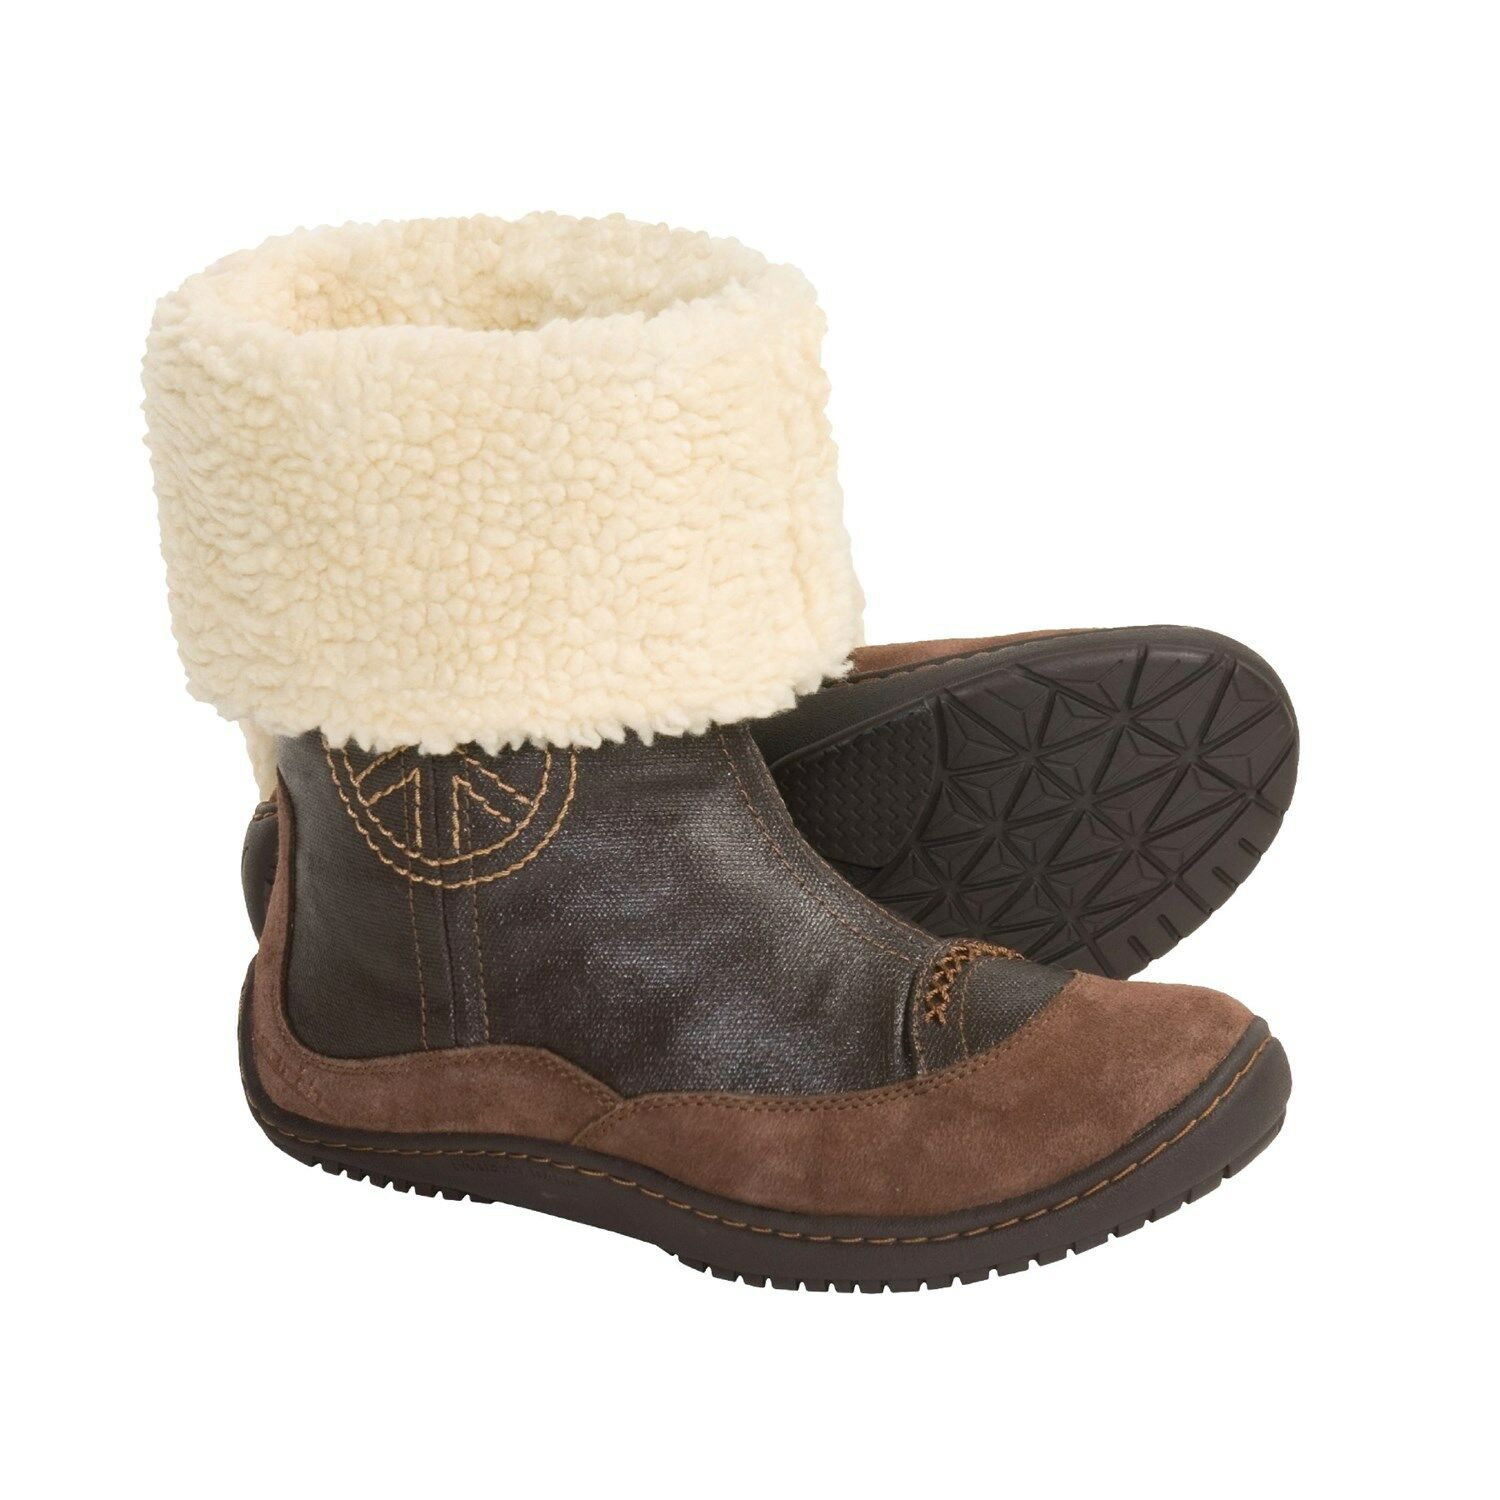 EARTH INNERPEACE NEU 130 SZ 5.5 B BROWN LEATHER BOOTS BOOTIES